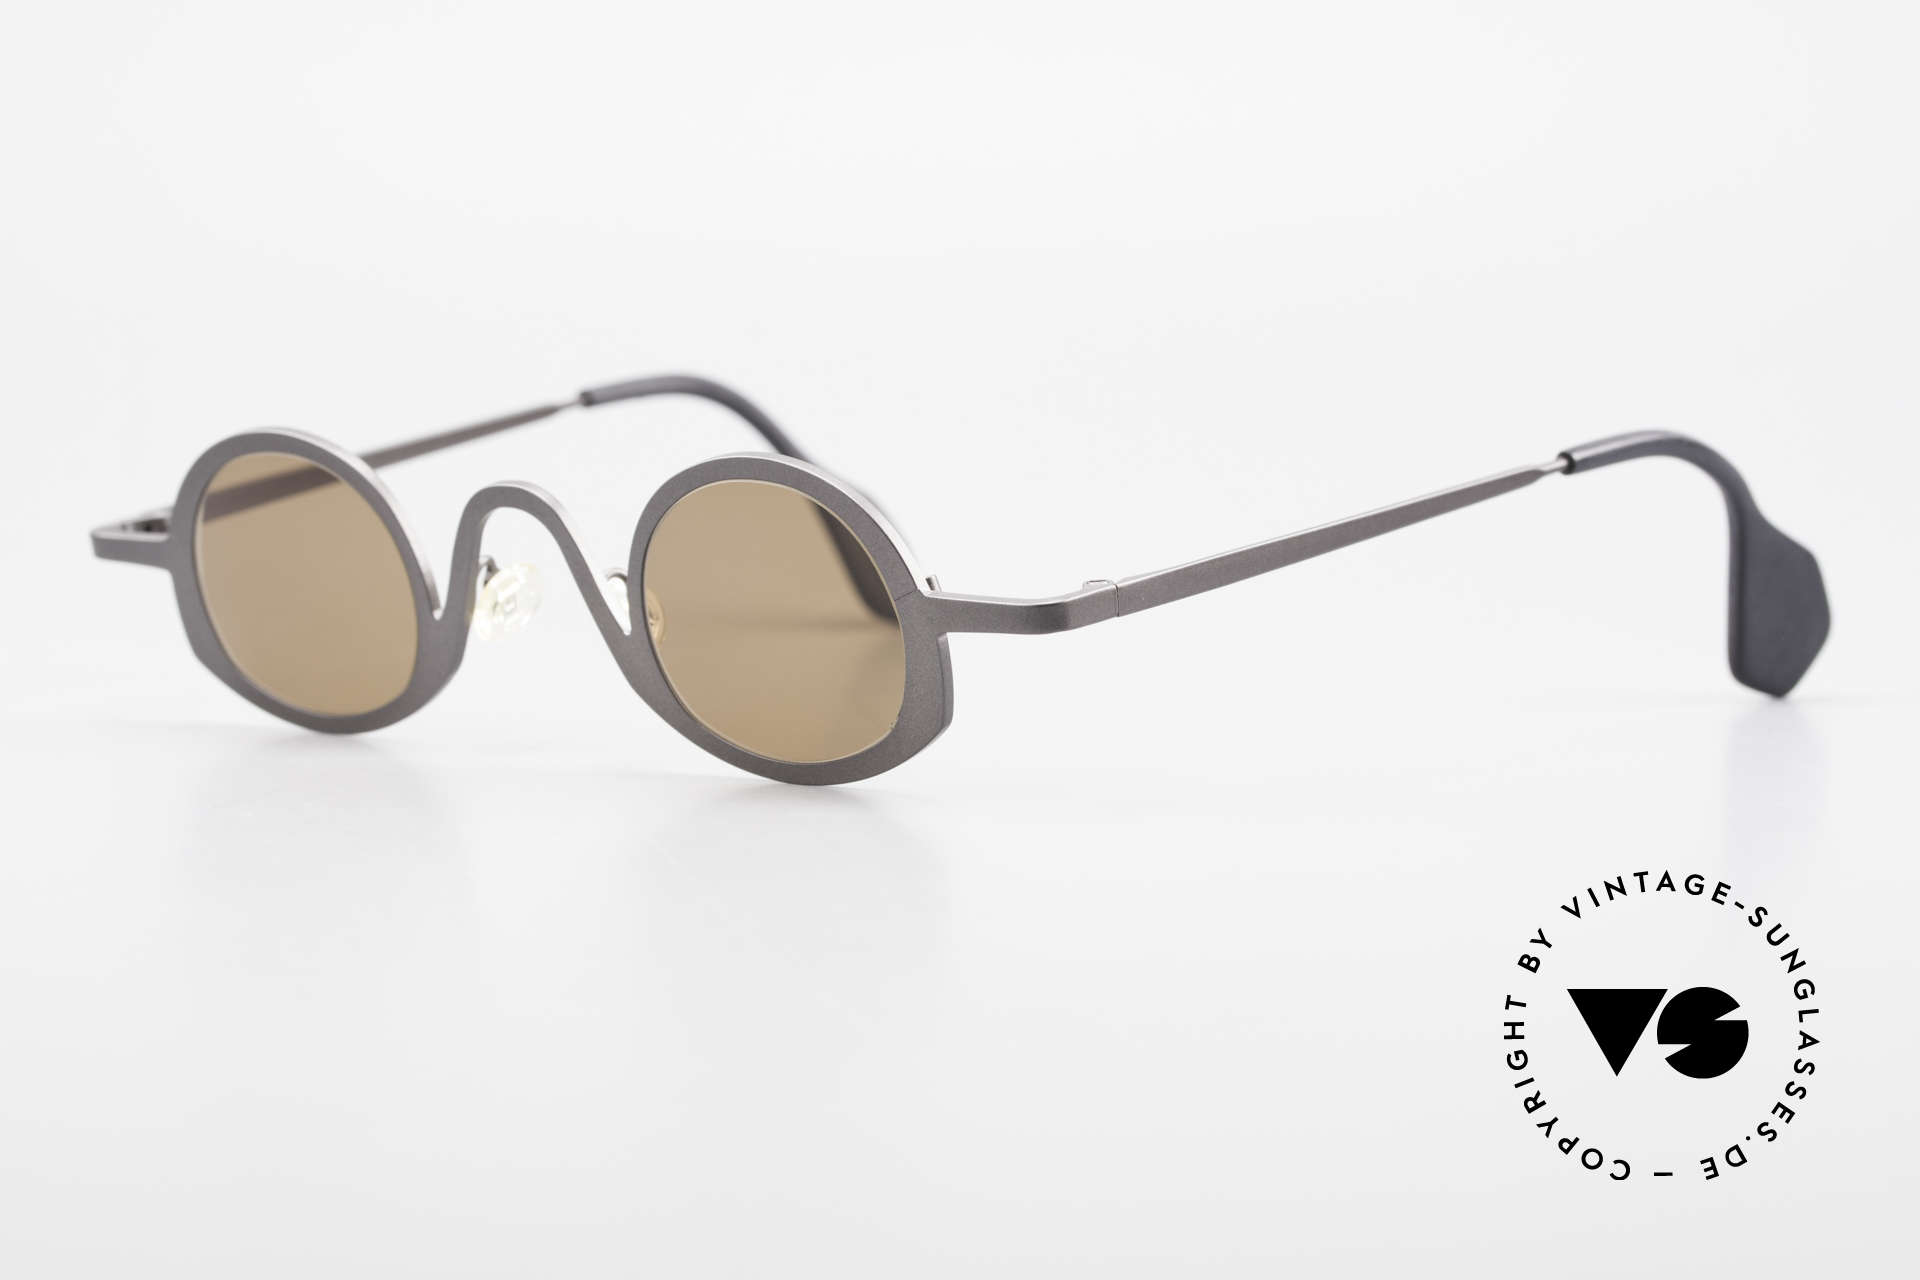 Theo Belgium Circle Avant-Garde Sunglasses 90's, made for the avant-garde, individualists & trend-setters, Made for Men and Women